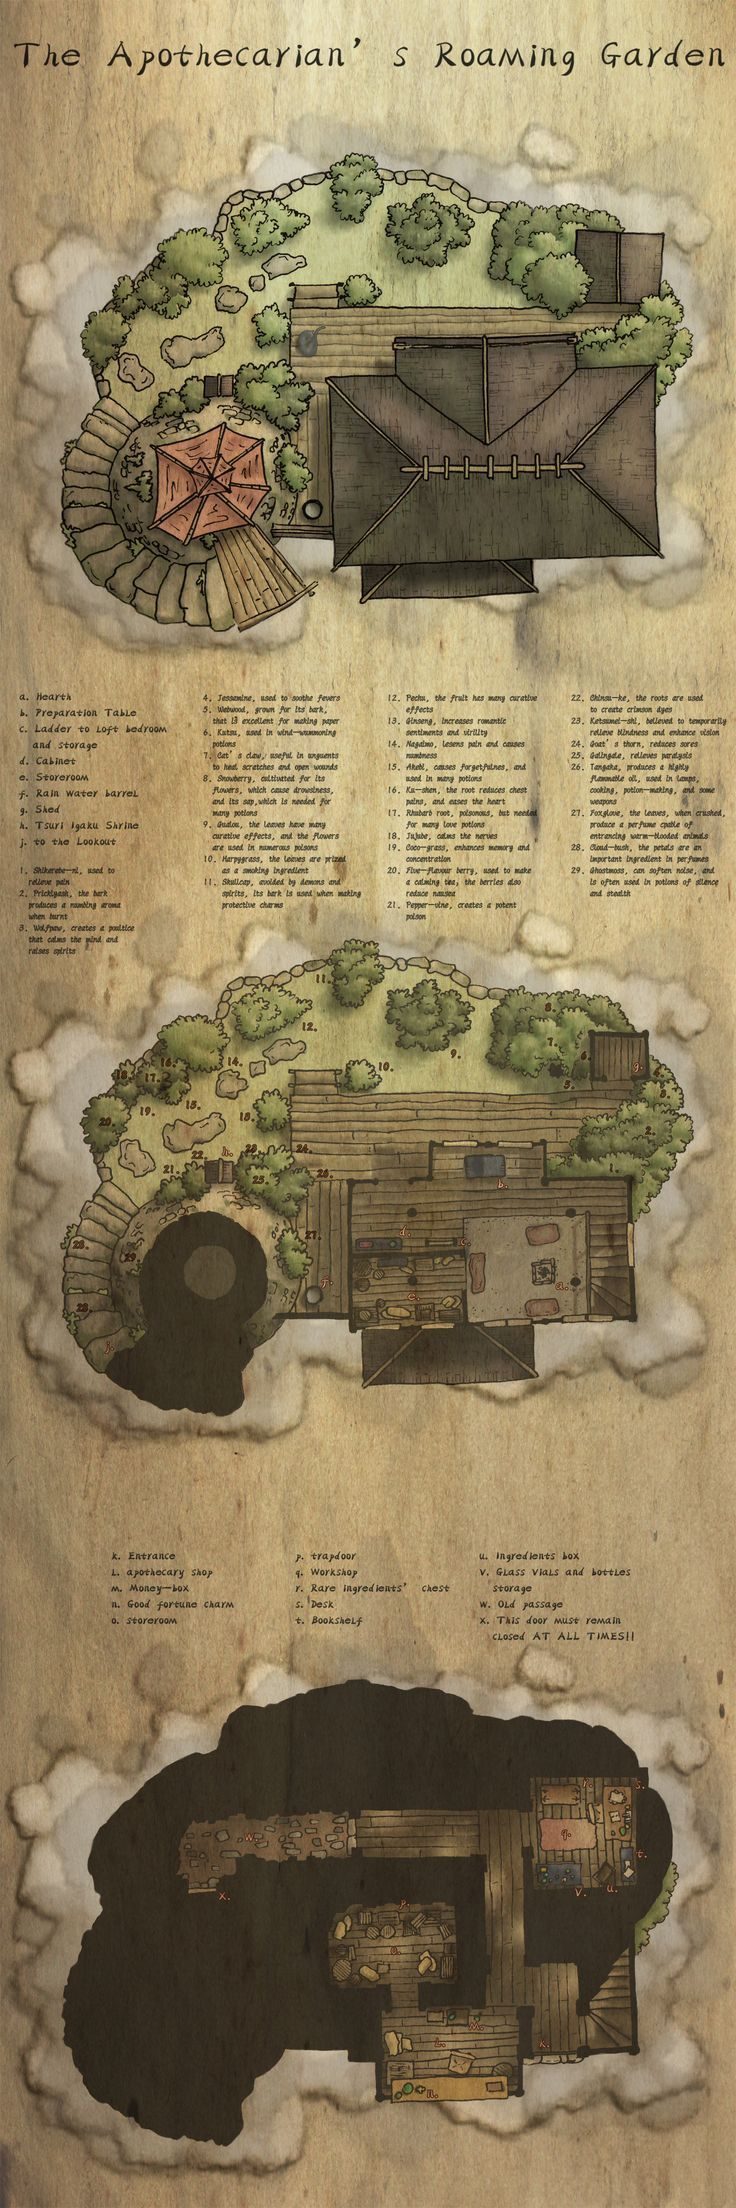 The Apothacarianu0027s Roaming Garden Wonderful map with